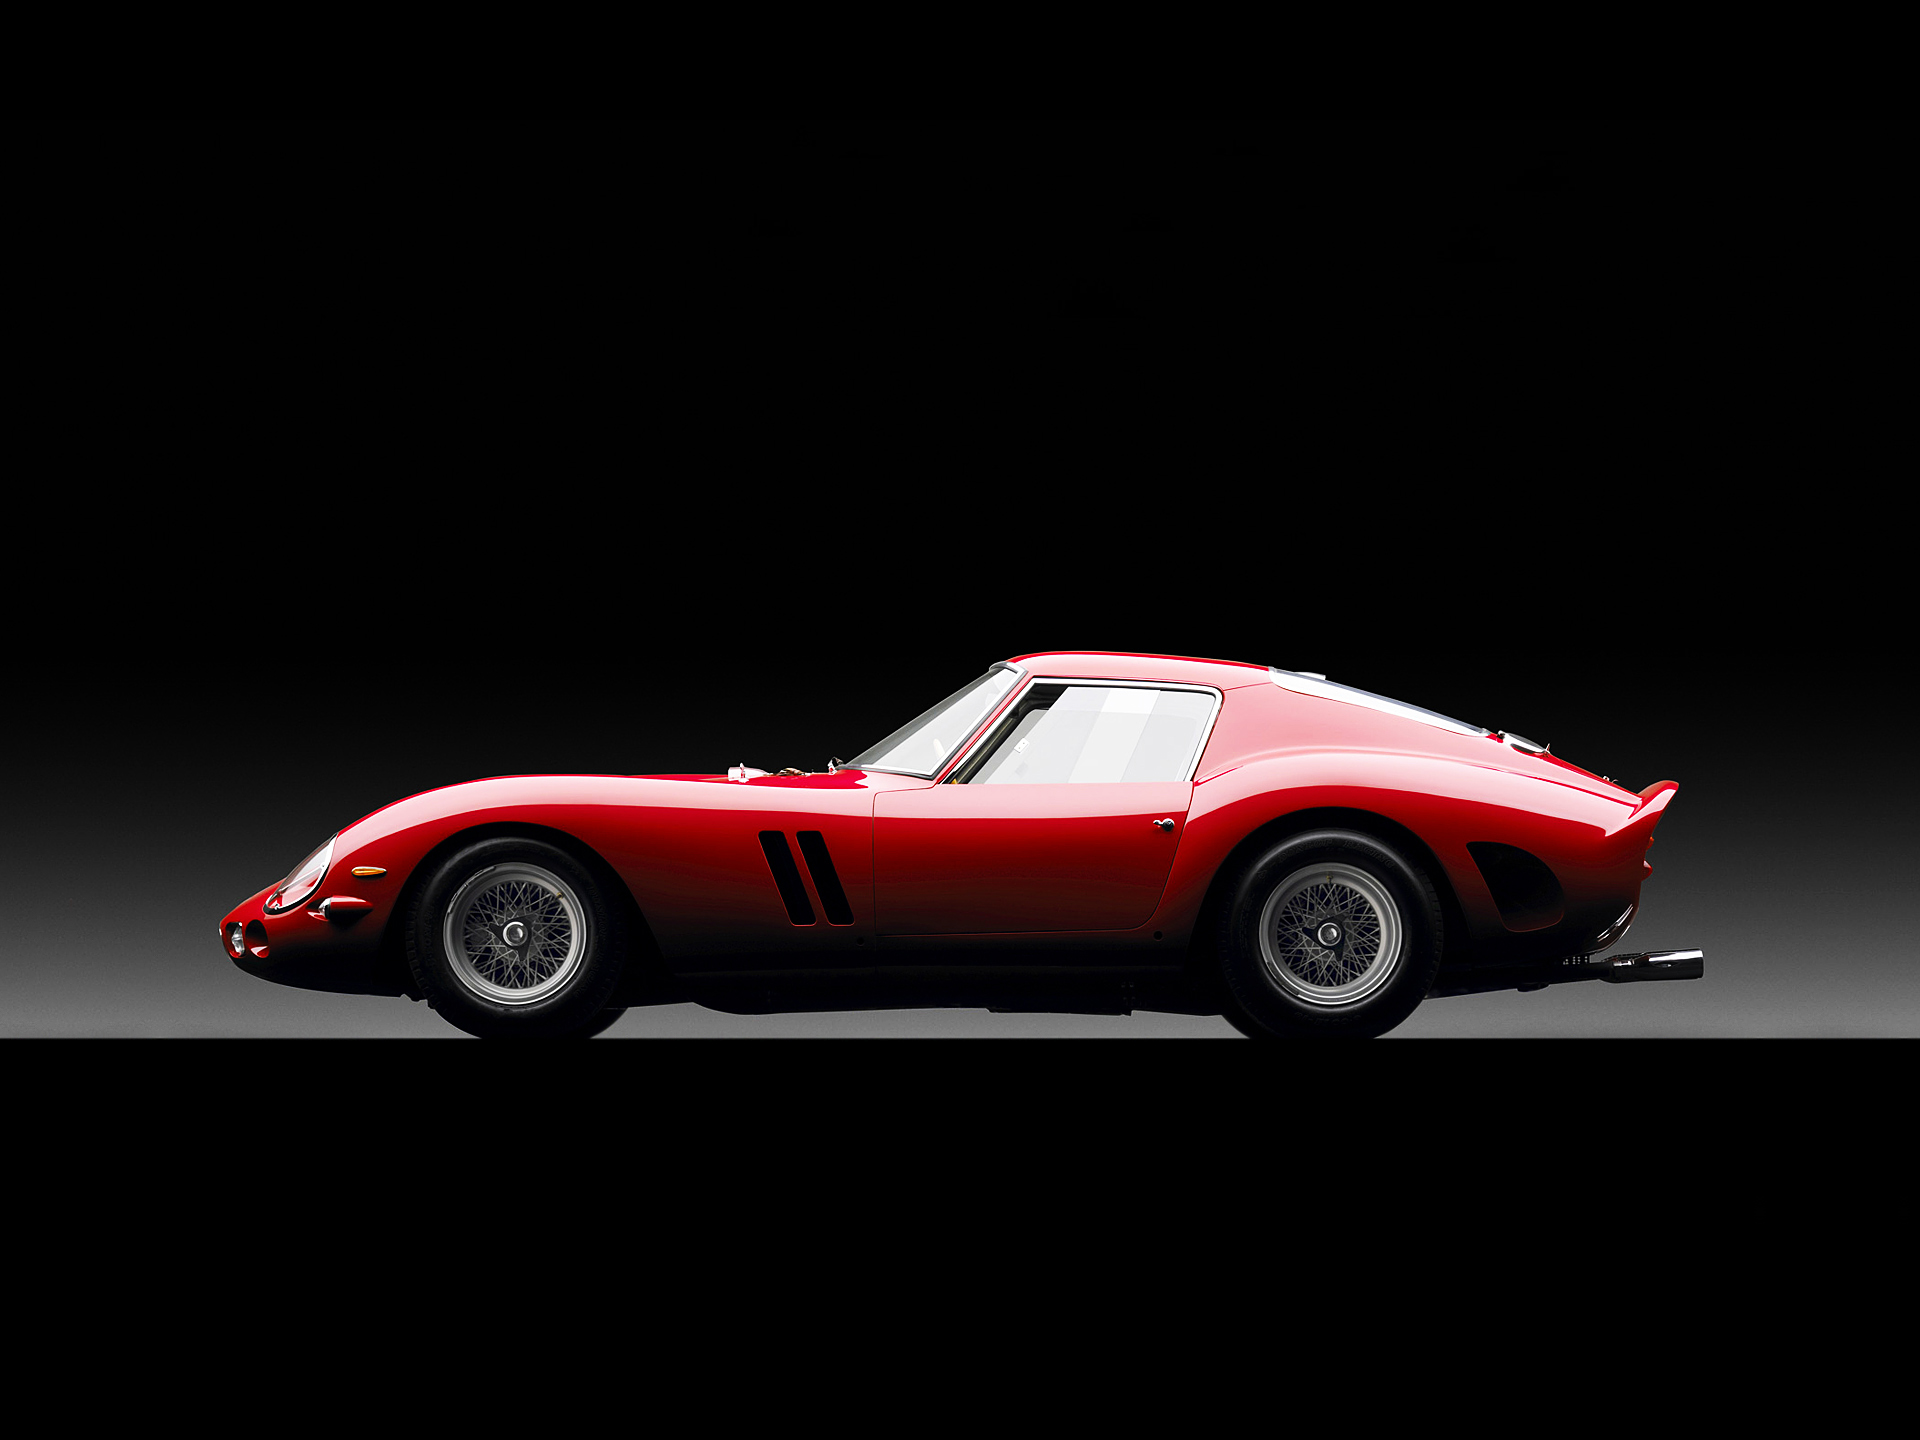 Ferrari 250 GTO Wallpaper 01   [1920x1440] 1920x1440